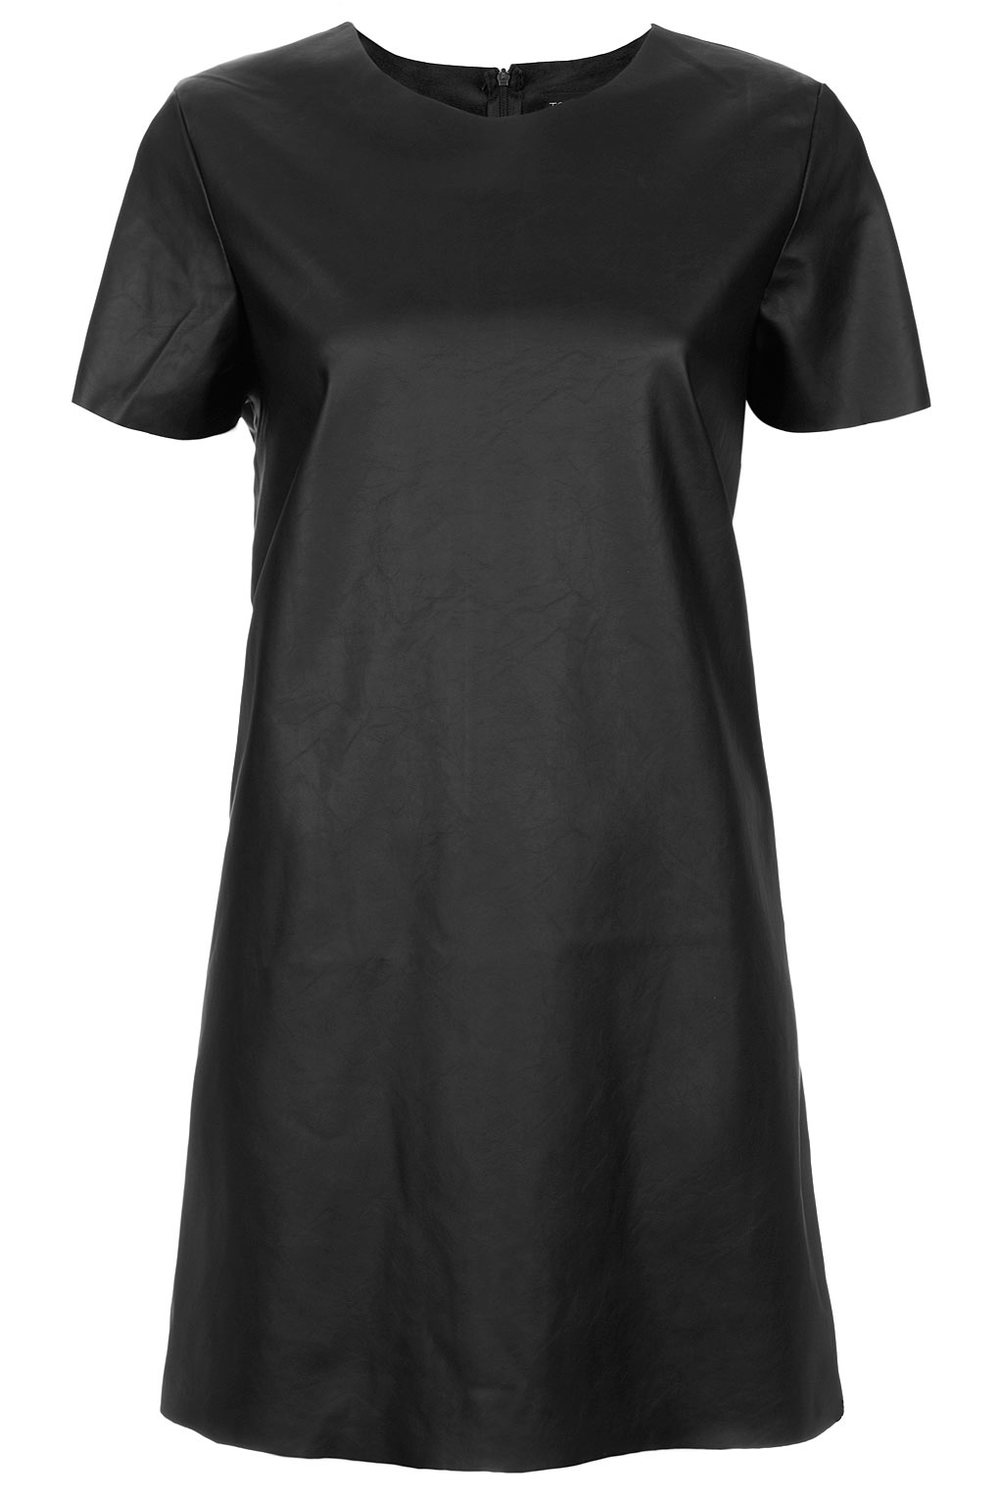 TopShop Leather look T shirt dress. TopShop. Was: $100 Now: $30.